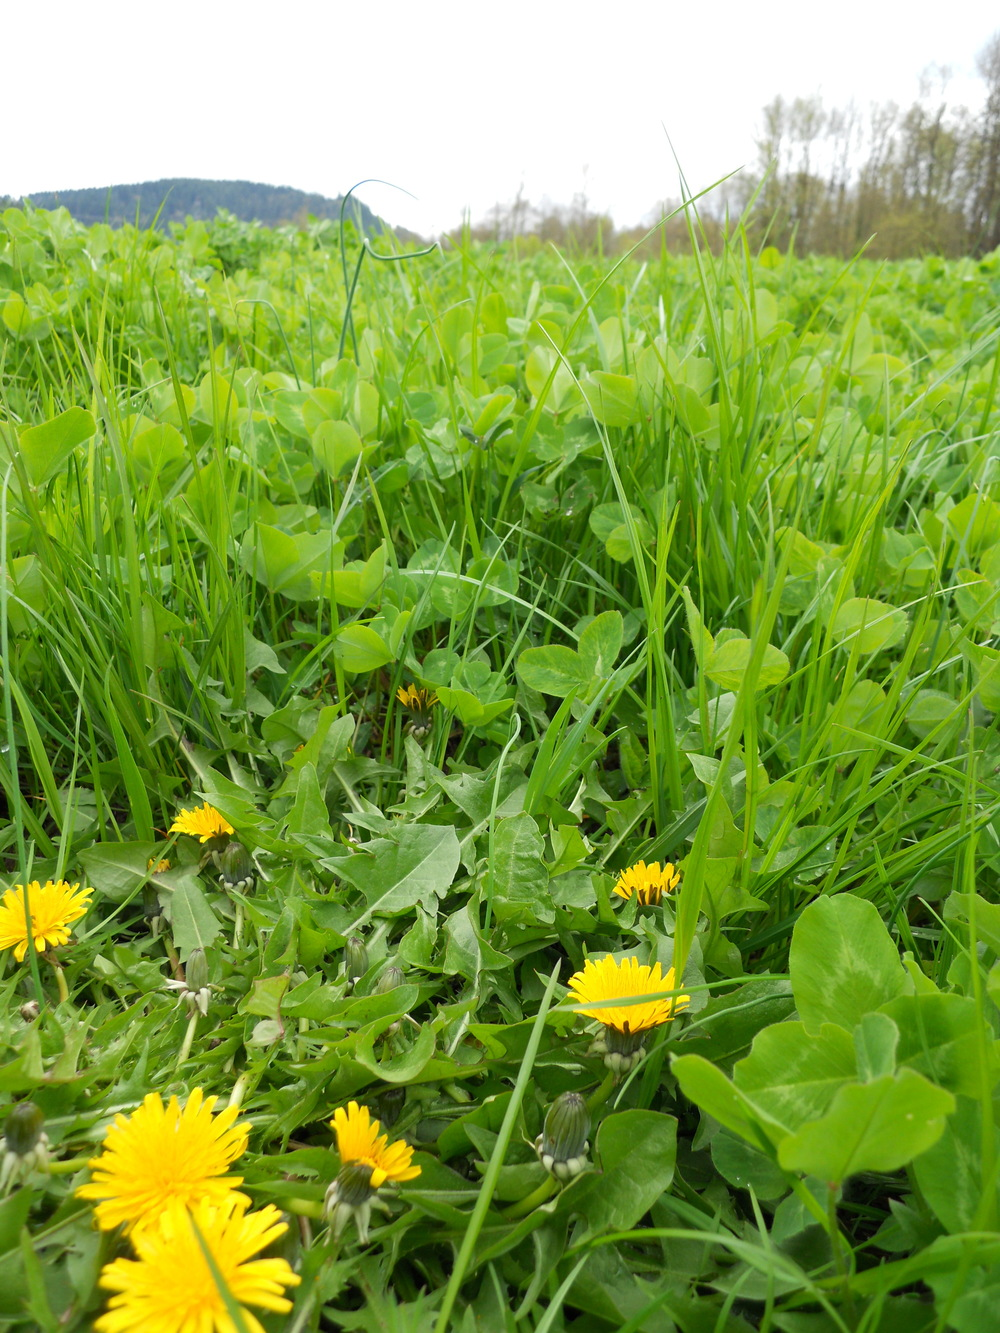 Even our cover crops are a polyculture.  Here, a clover and rye pasture mix is studded with occasional dandelions and wild onions.